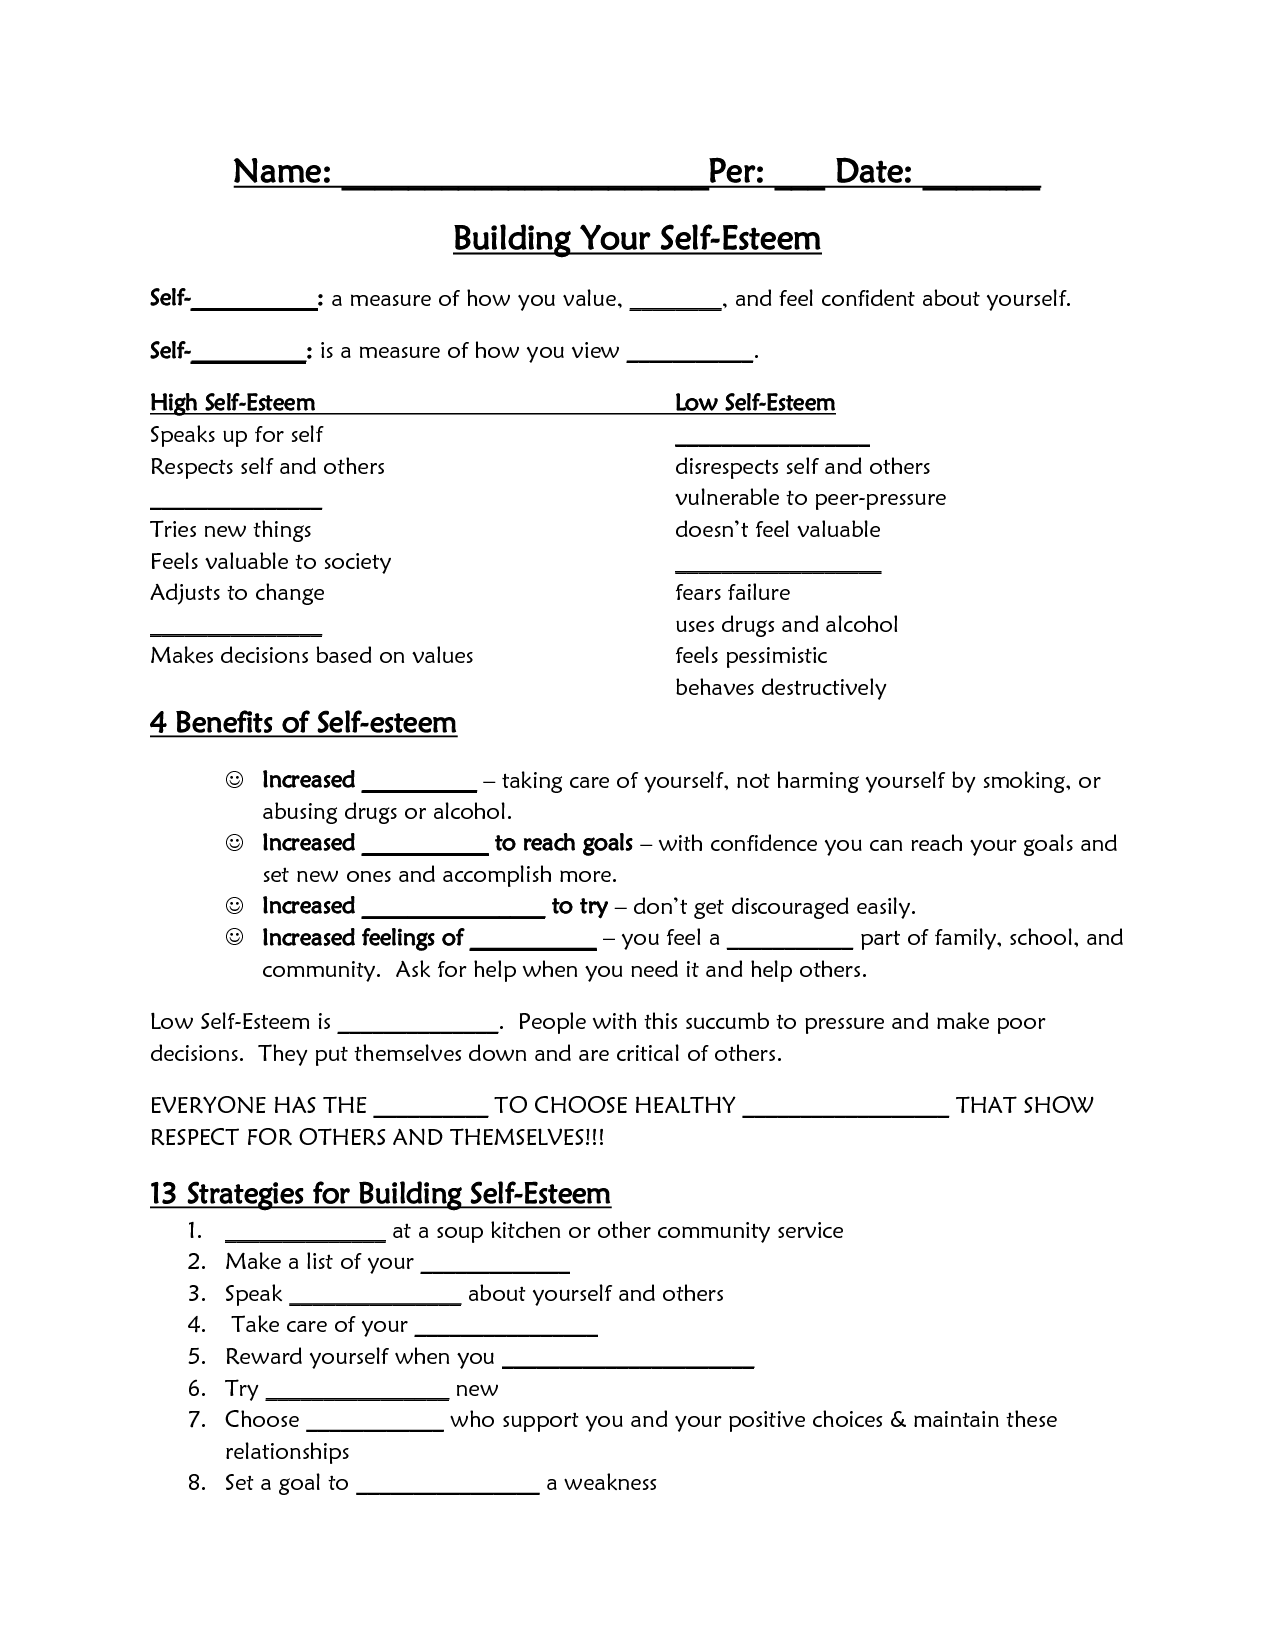 selfesteem worksheet Google Search – Self Worth Worksheets